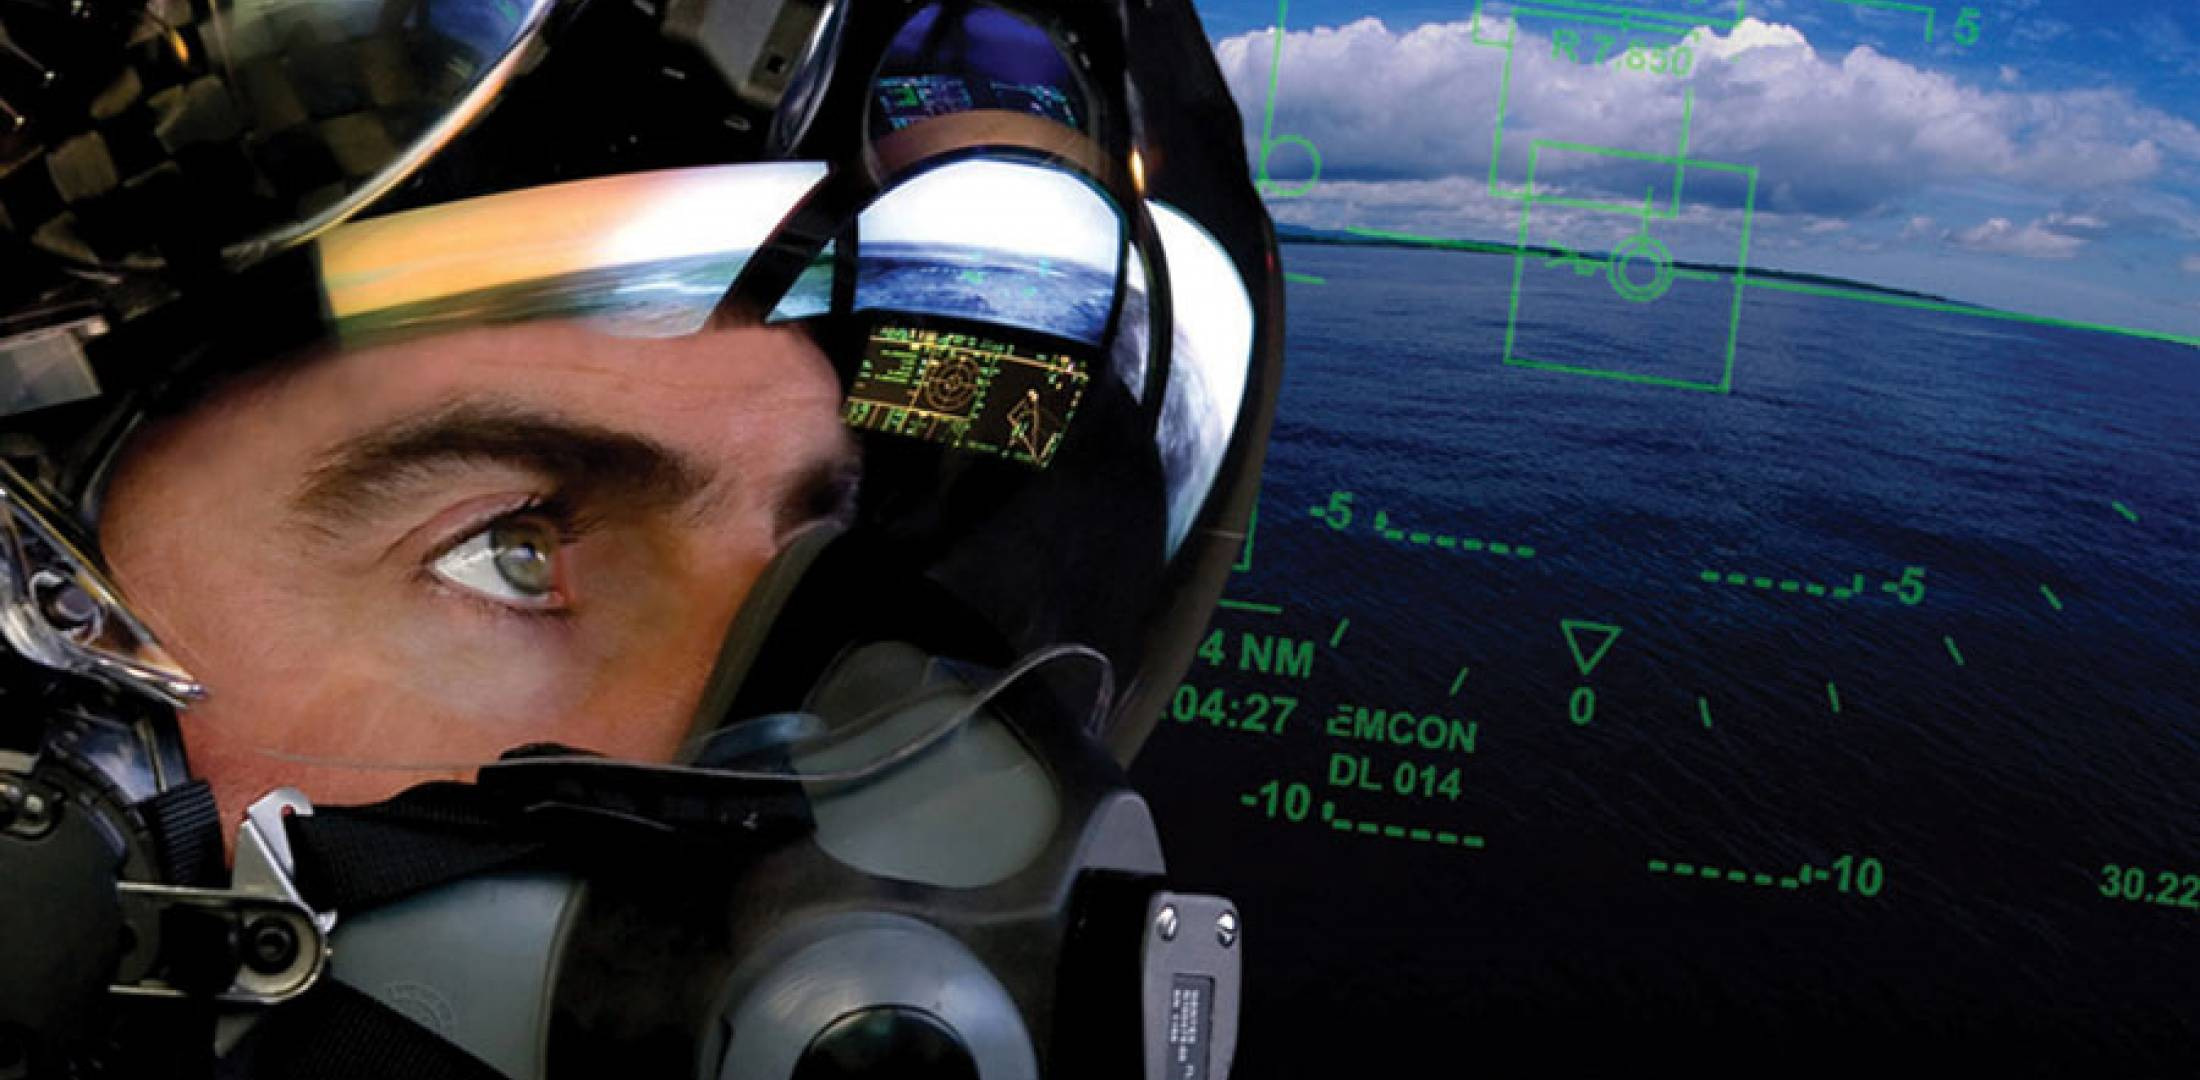 A new sensor in the 'Gen 3' helmet display will improve night vision acuity, a major defect of the 'Gen 2.'